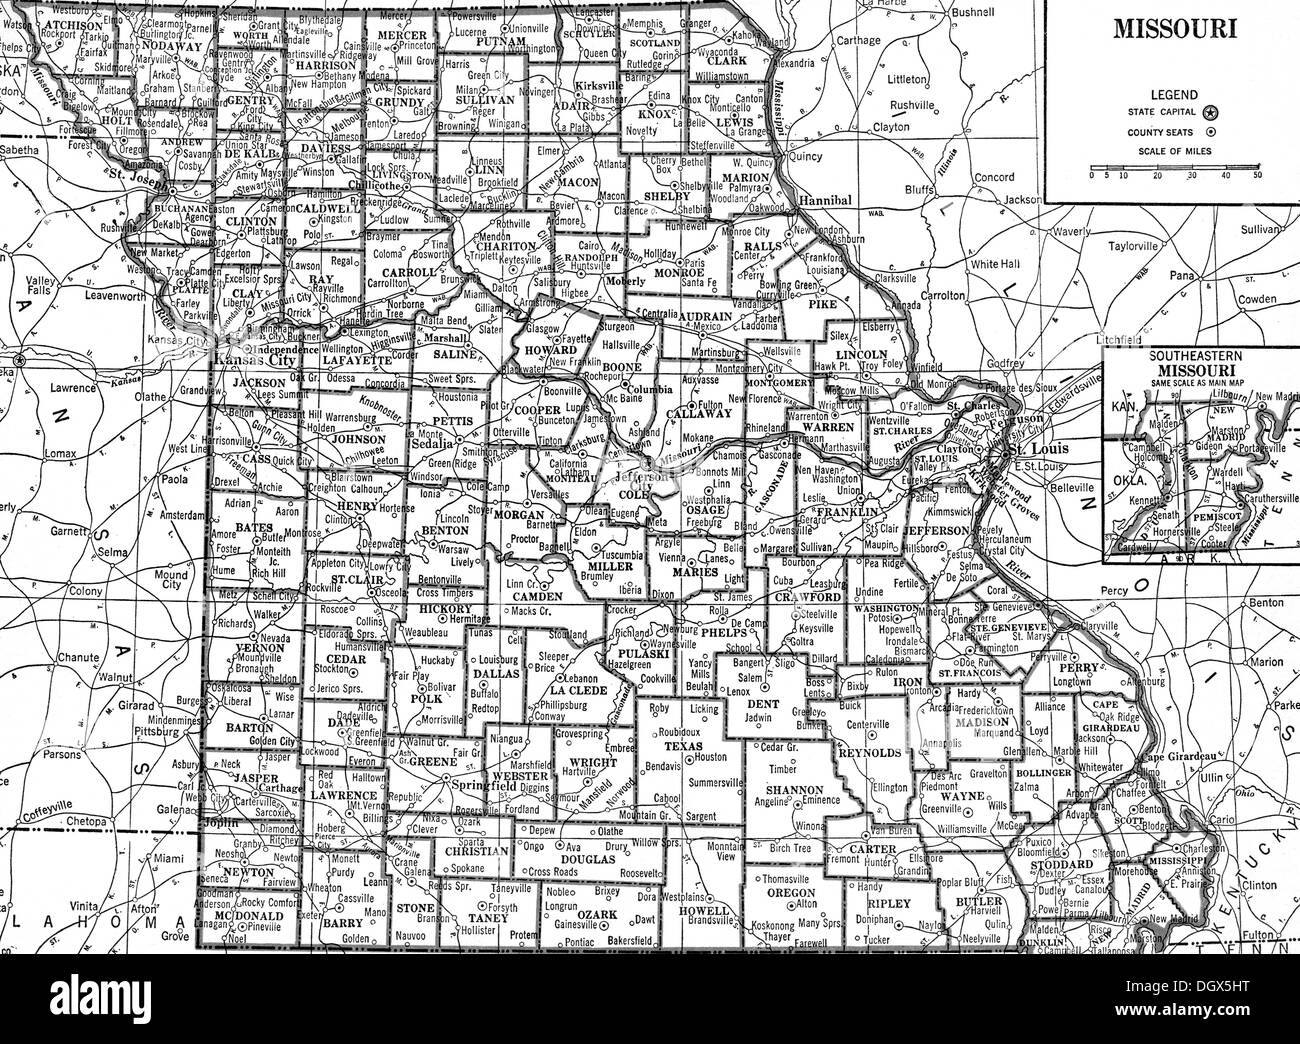 Old Map Of Missouri State S Stock Photo Royalty Free Image - State of missouri map